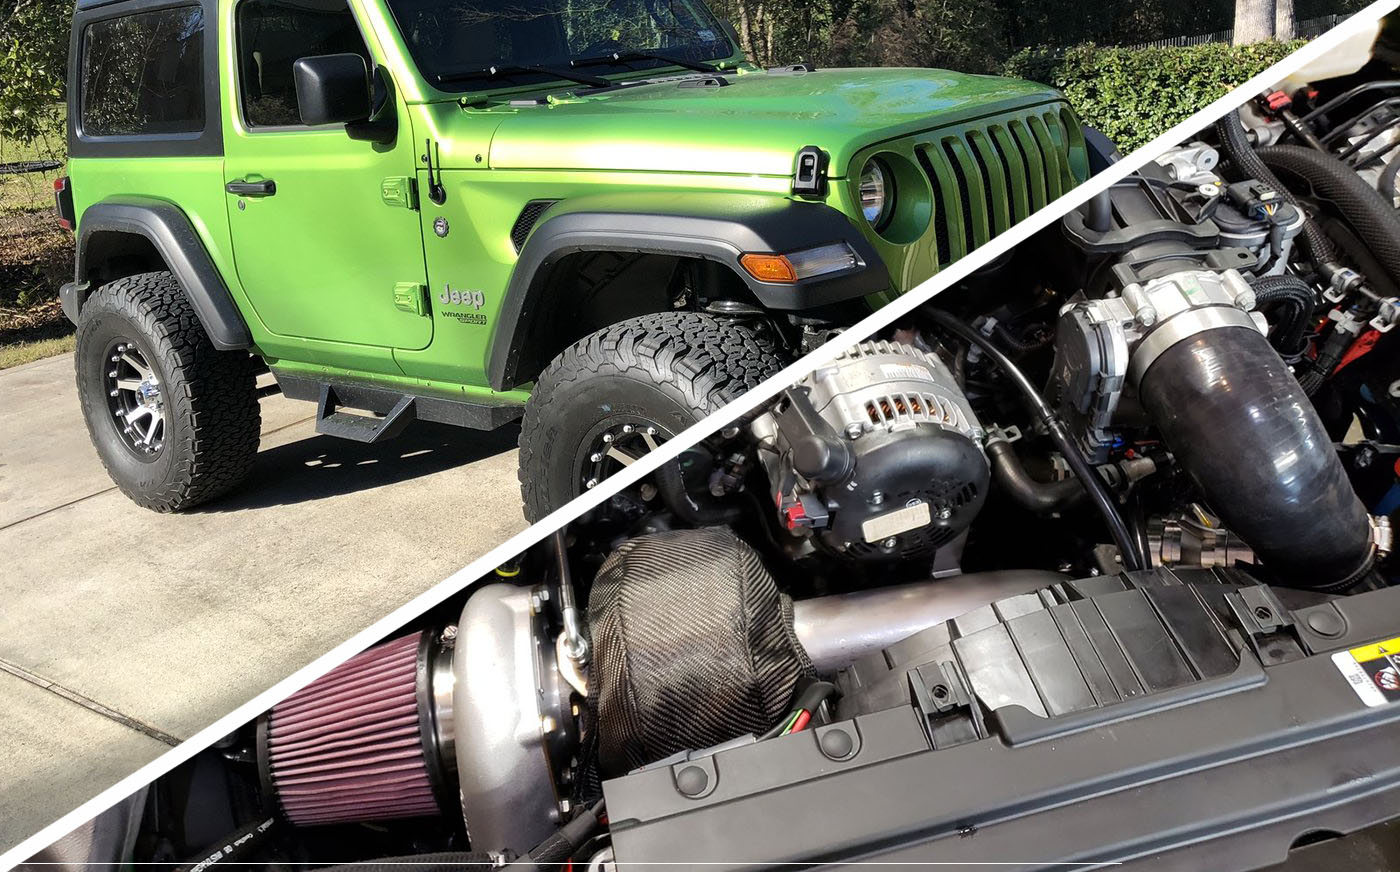 A Stage 2 Turbo Kit Powers This Little Green Monster Jeep